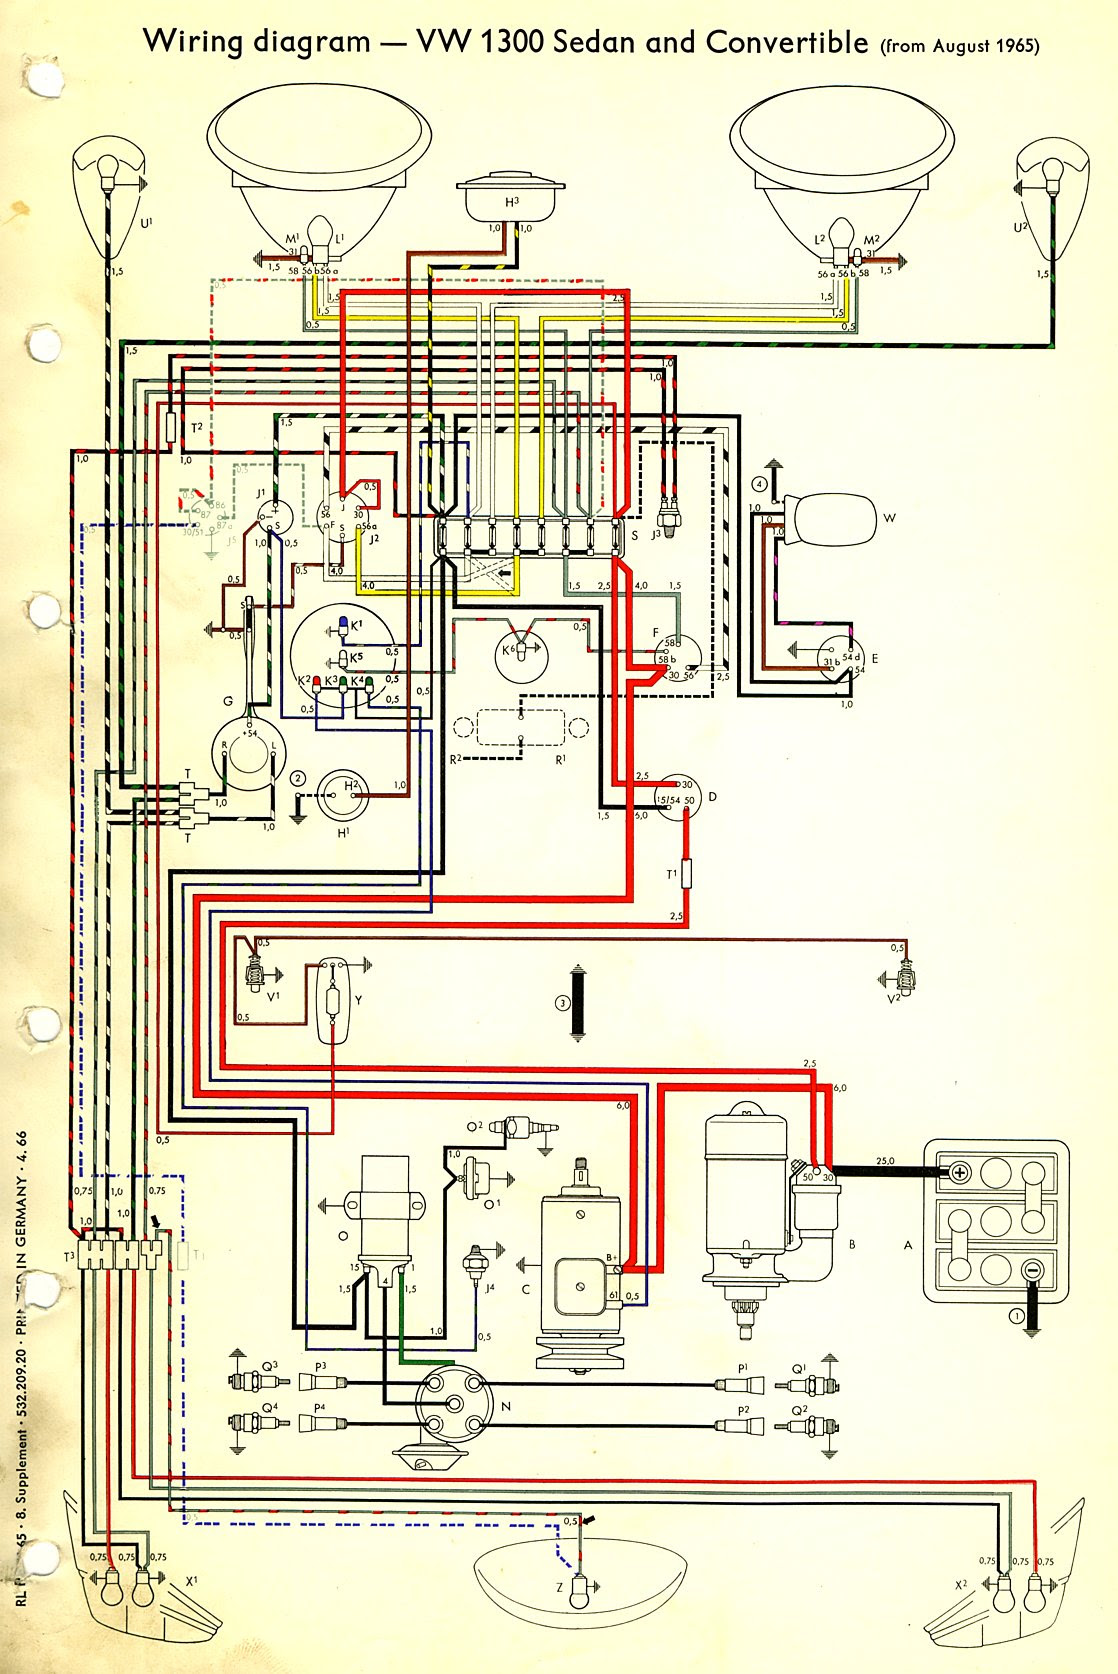 [DIAGRAM] Vw Beetle Wiring Diagram 1971 FULL Version HD ...